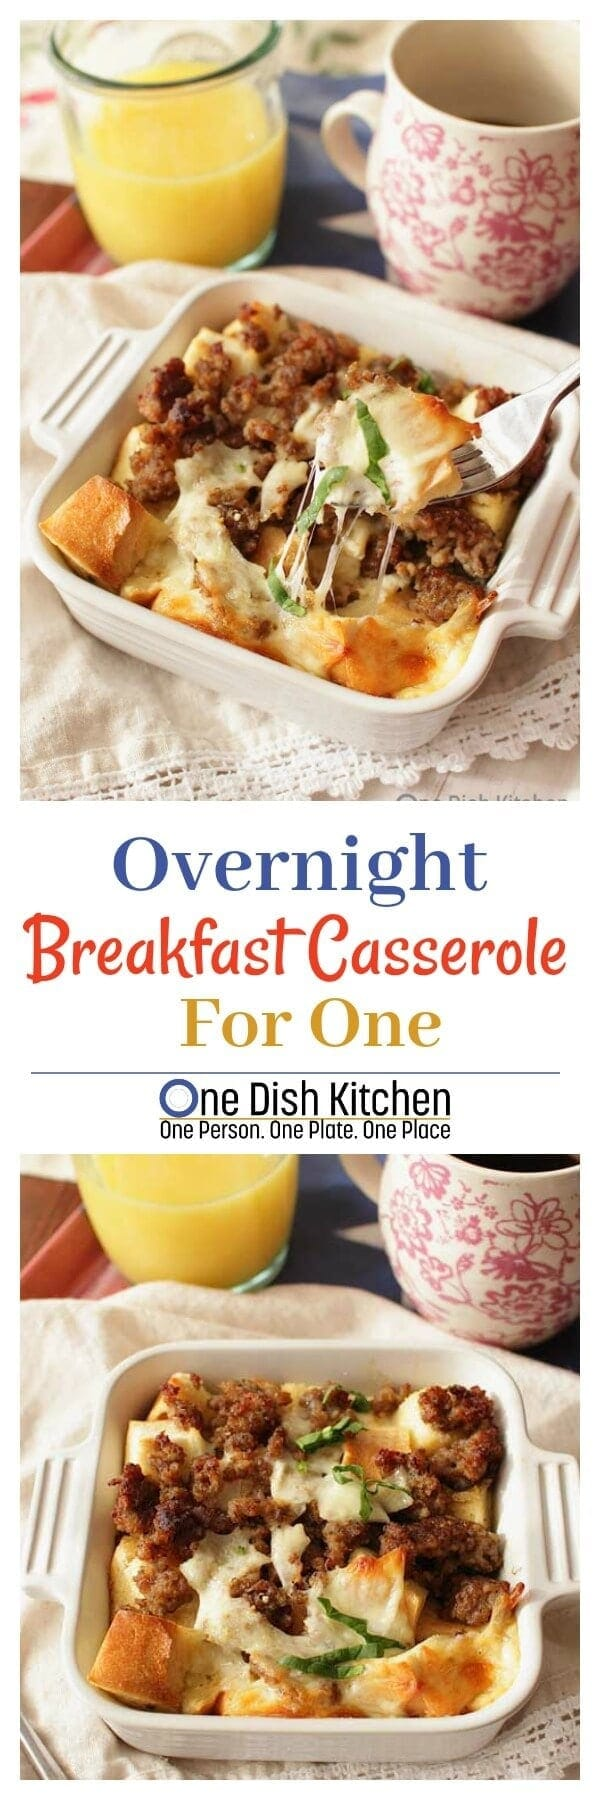 Mix together sausage, cheese, an egg, milk and bread and chill overnight for an easy and delicious single serving Breakfast Casserole For One.   ONE DISH KITCHEN